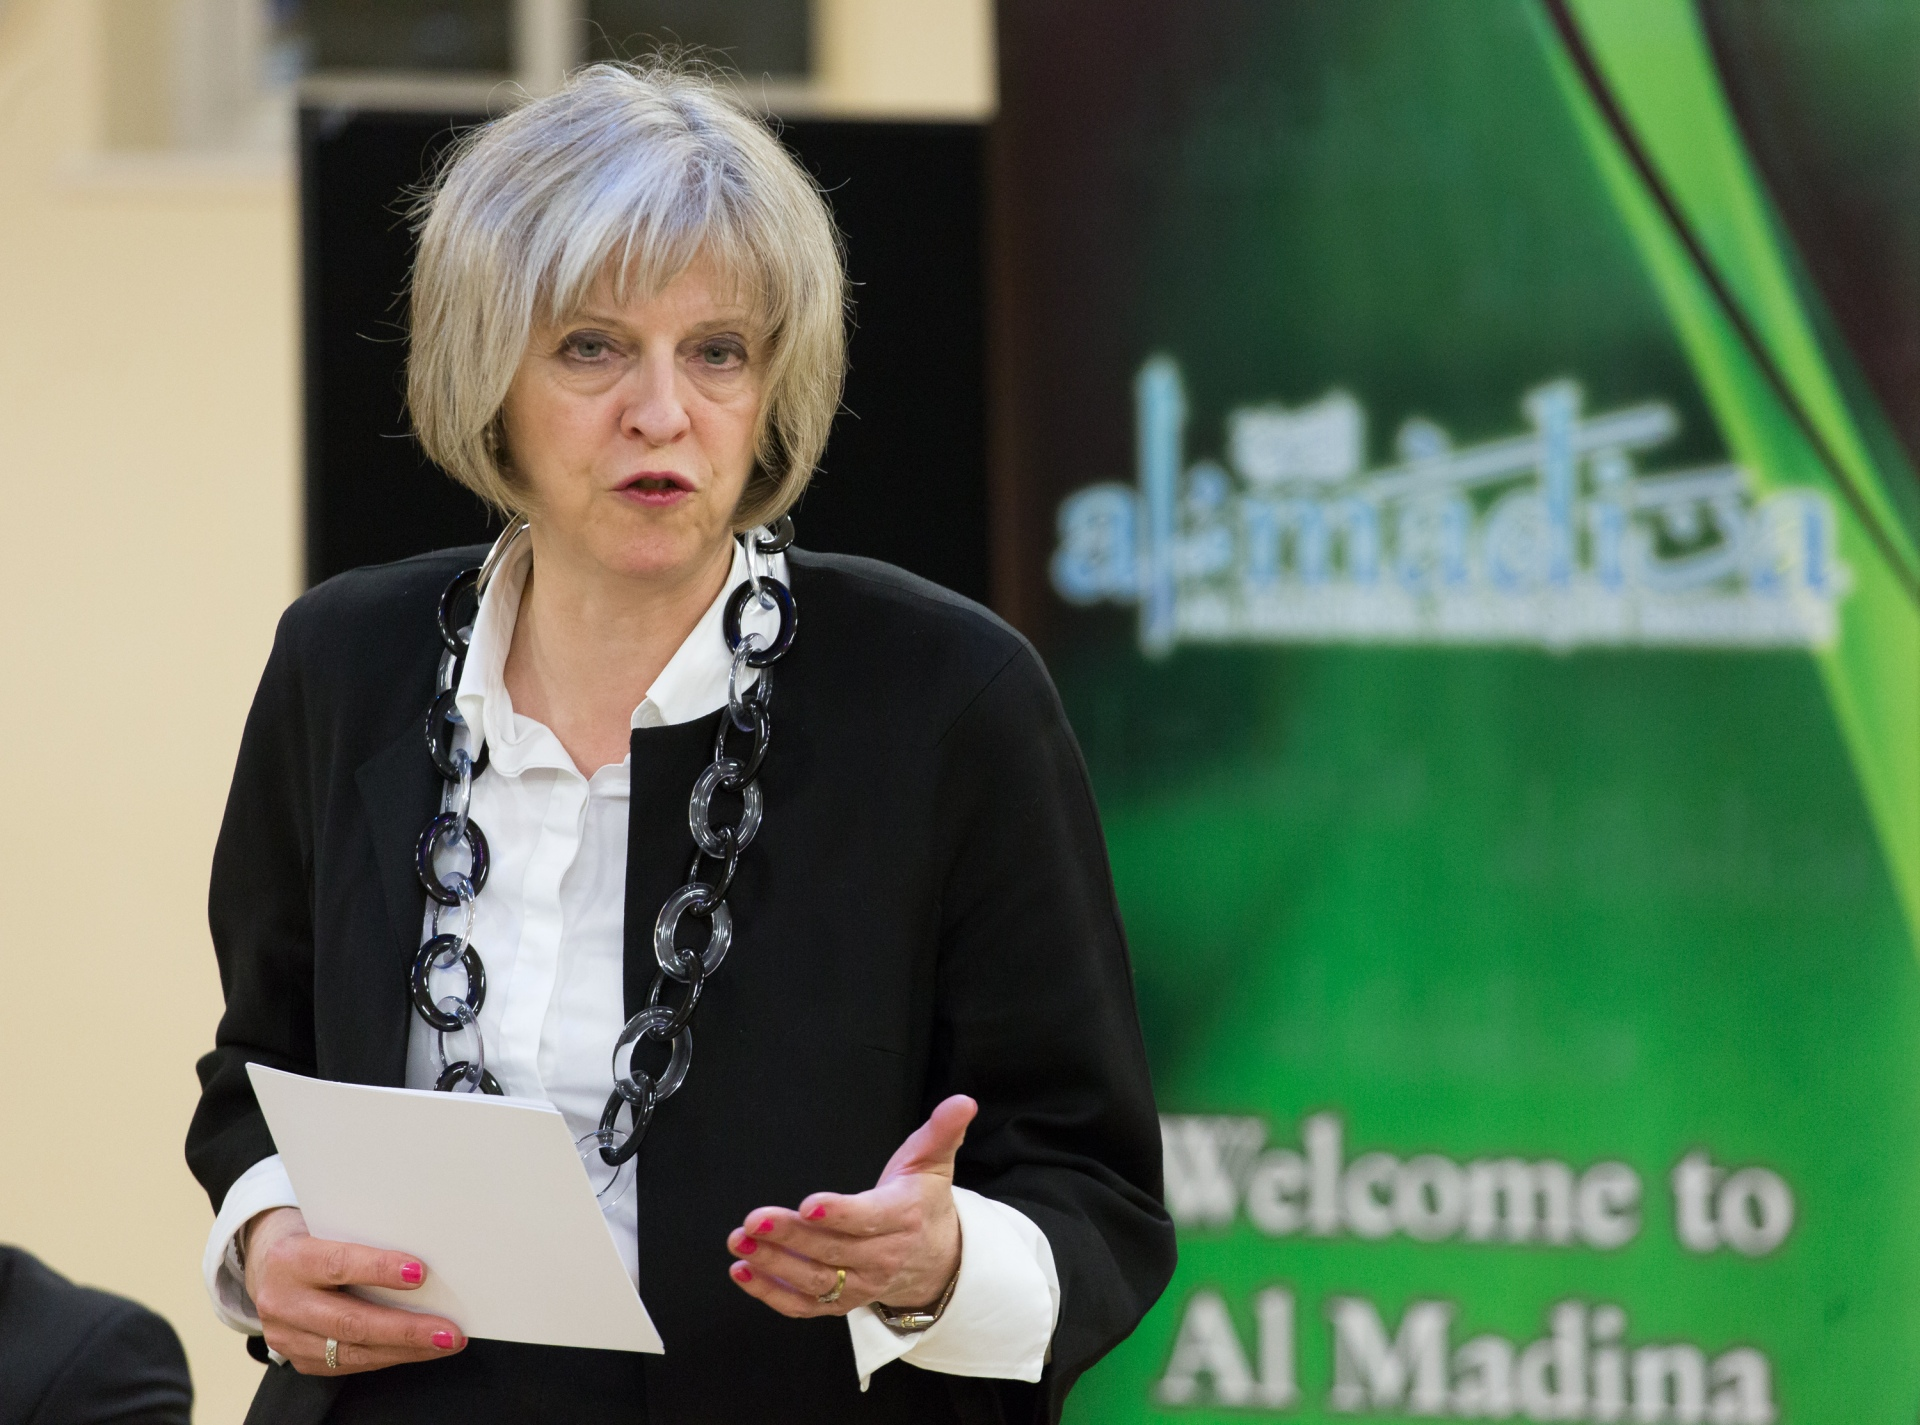 La Premier britannica, Theresa May